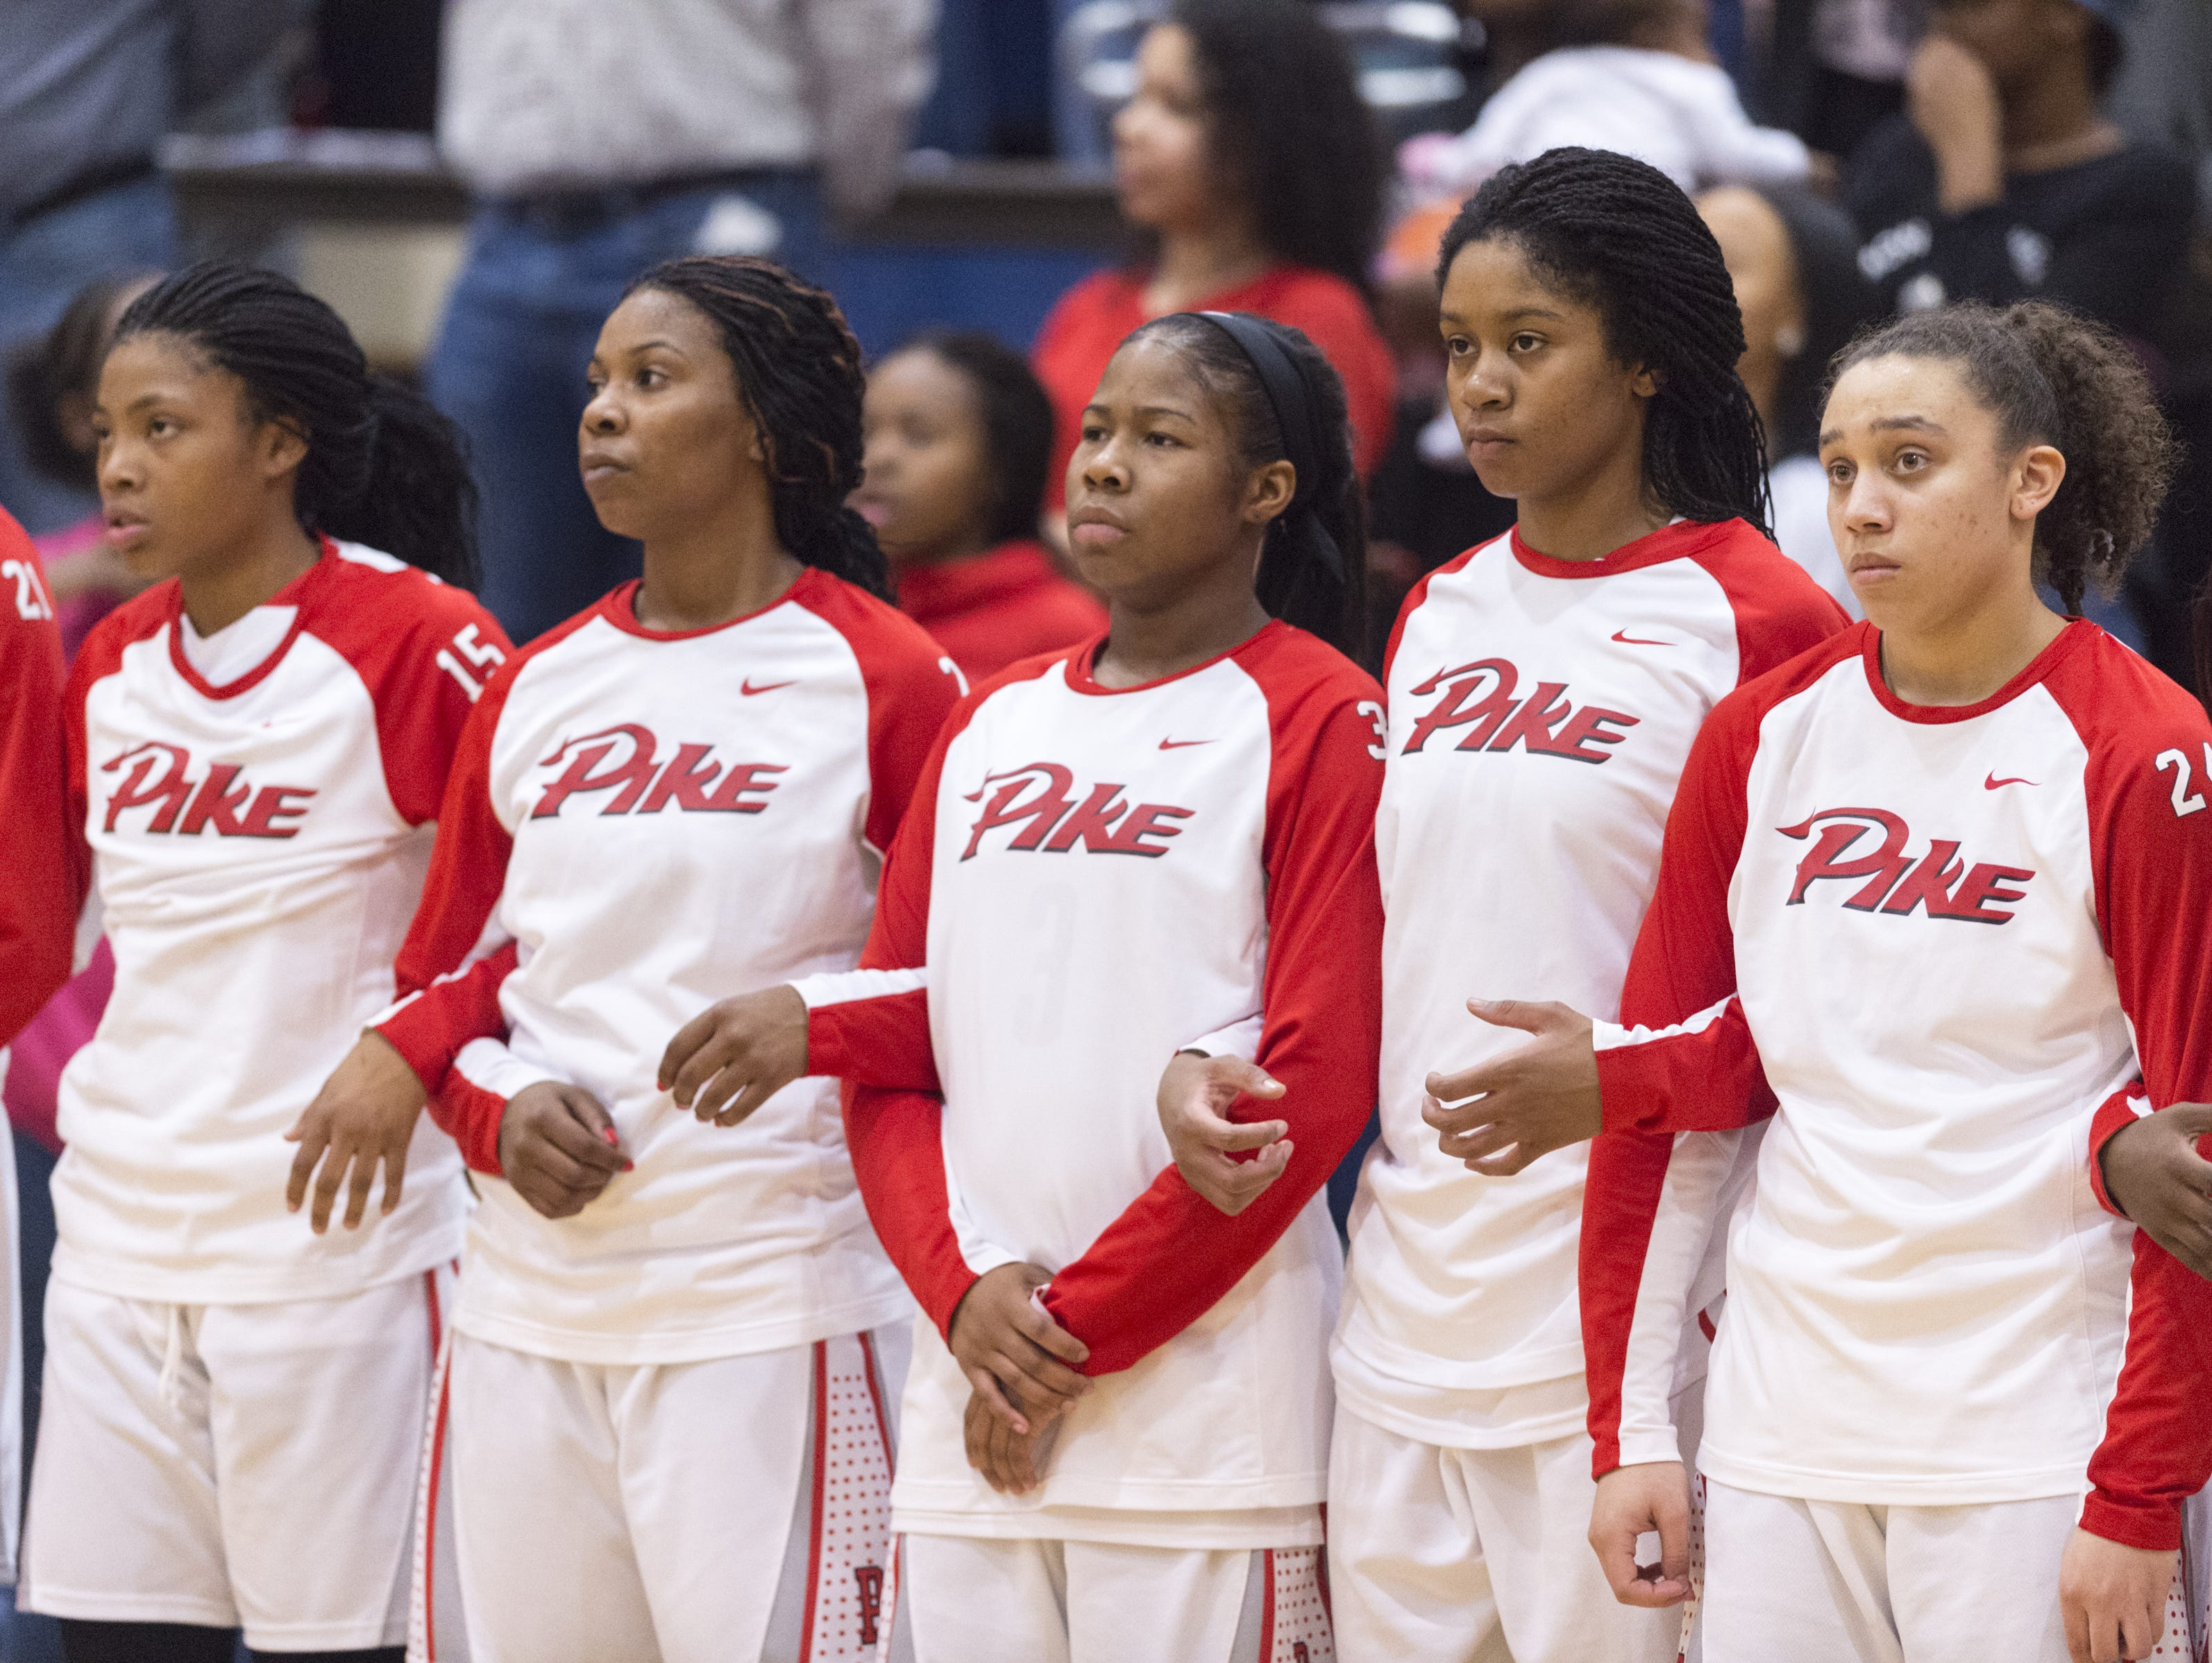 The Pike team come together for the playing of the National Anthem before the first half of the IHSAA 4A Girls' Basketball Tournament Regional championship game, Feb. 11, 2017, at Decatur Central High School.